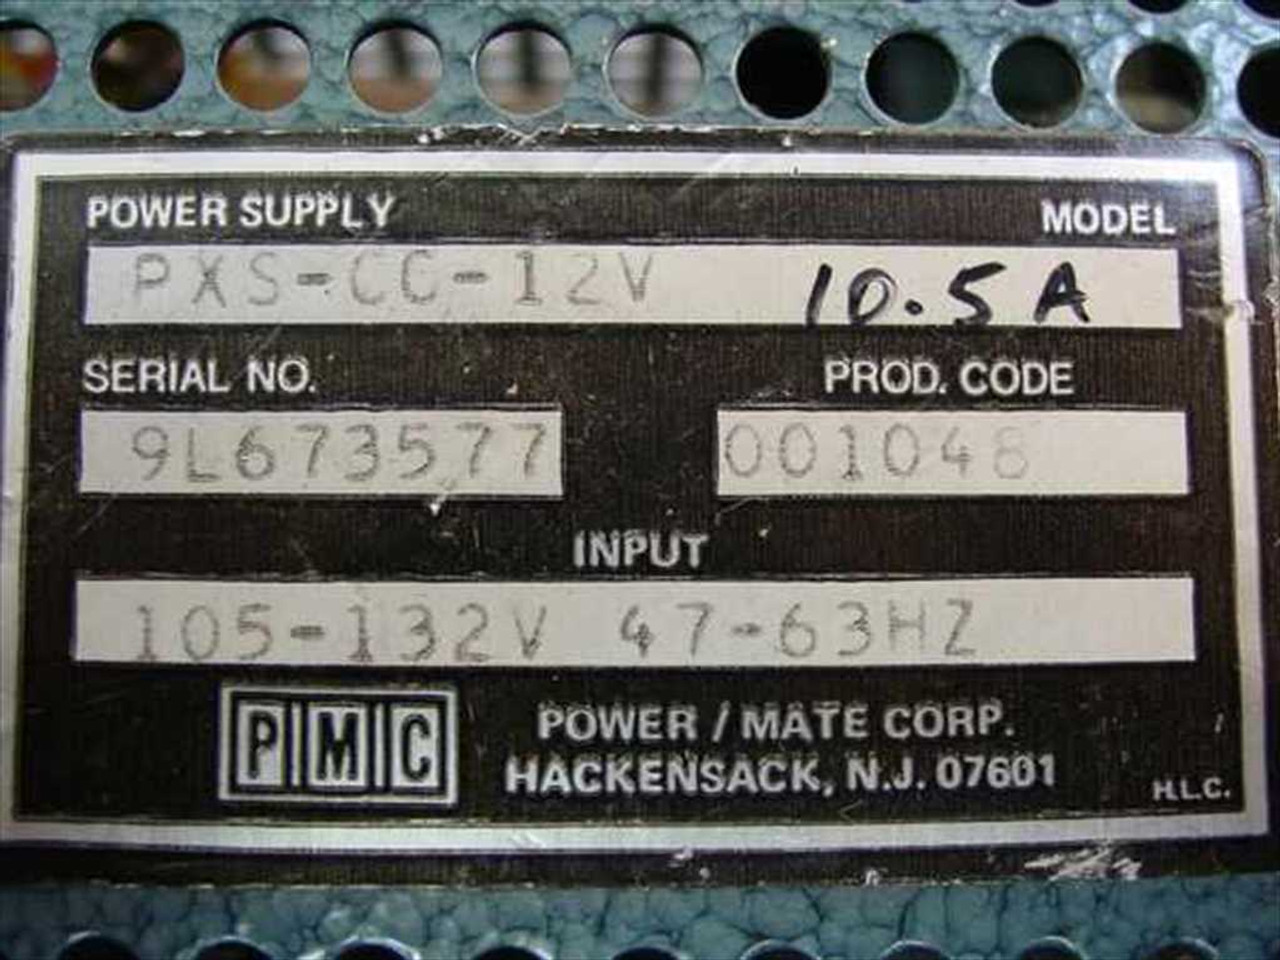 Power Mate Corp Pxs Cc 12 V Volt 10 Amp Regulated Supply